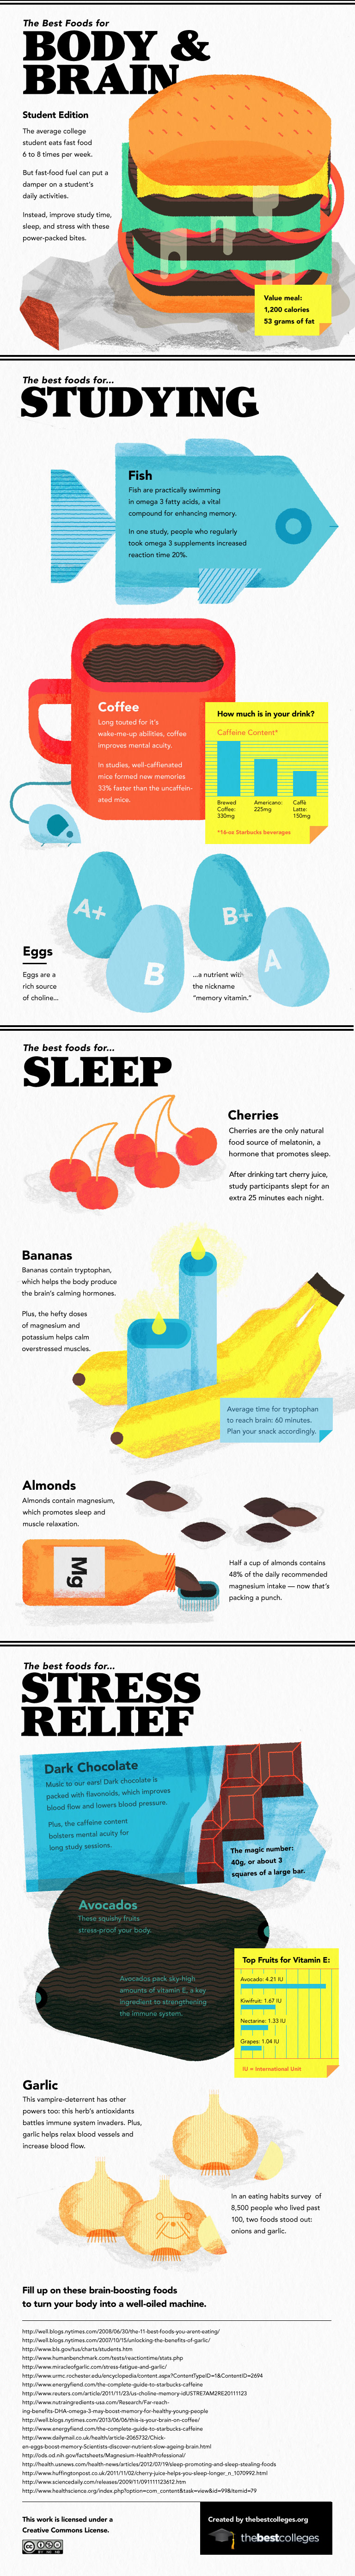 Infographic: Brain Food for College Students photo